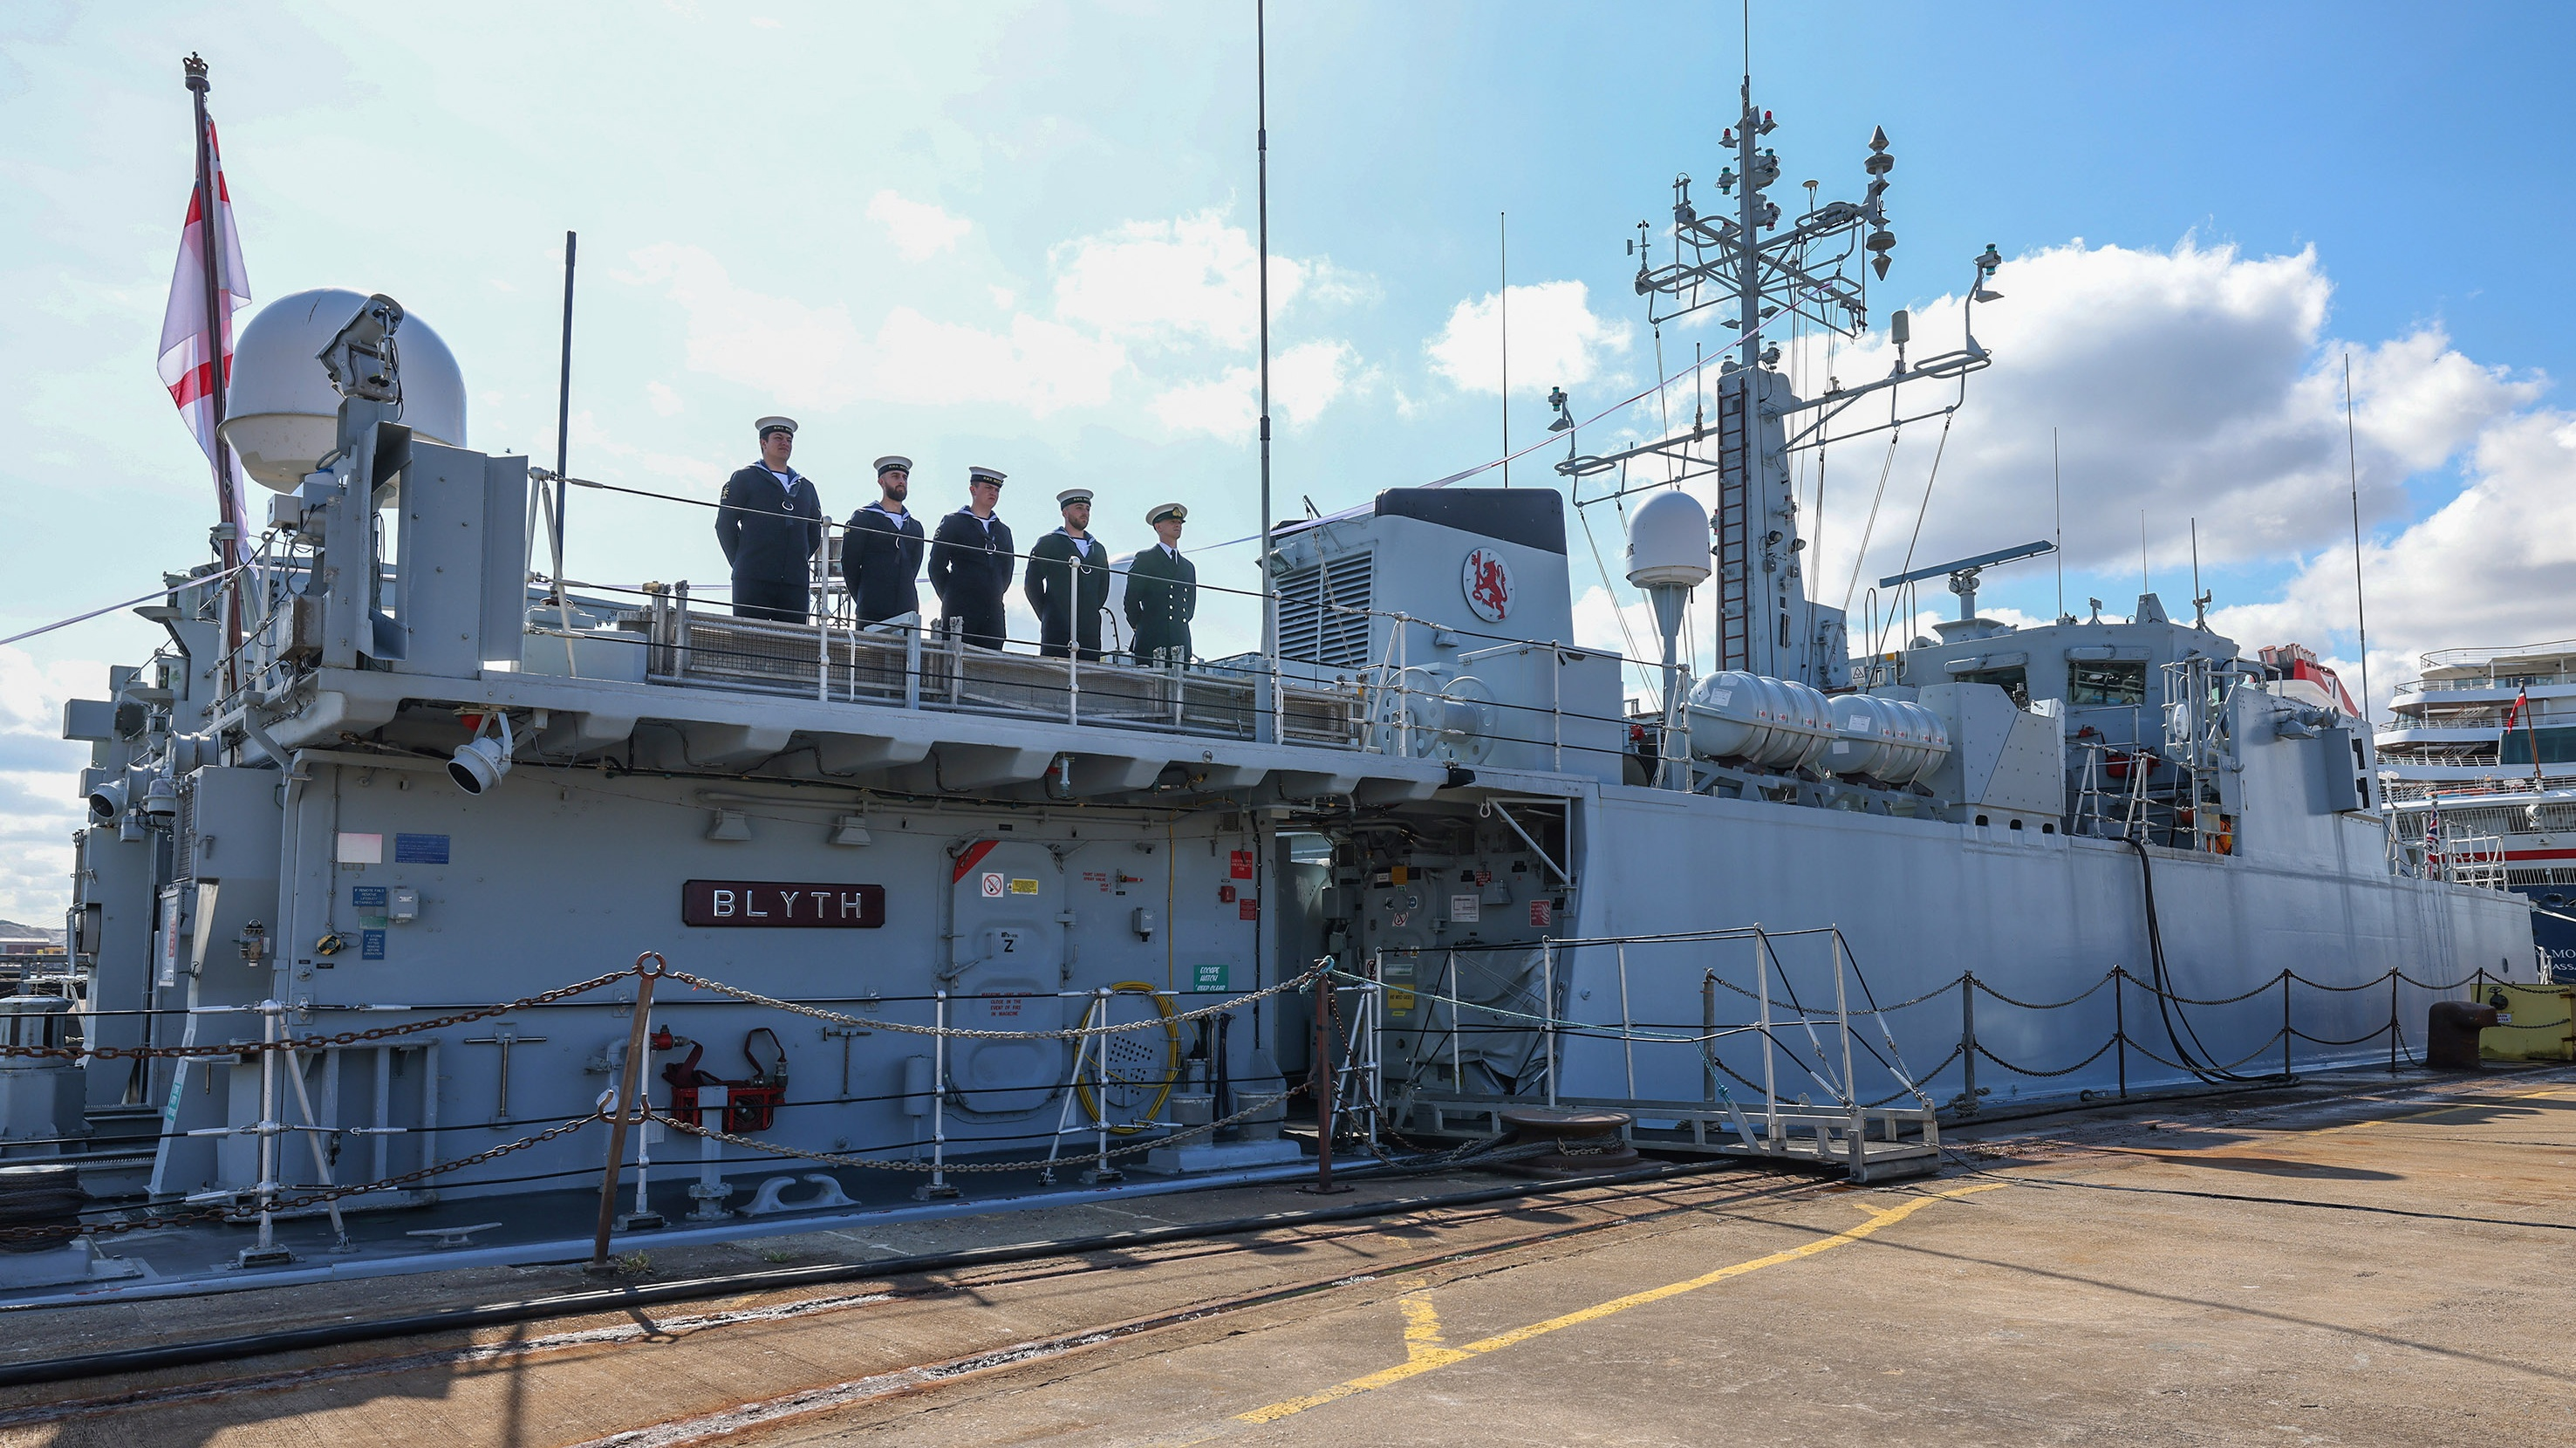 Five-sailors-stand-on-Blyths-upper-deck-for-the-ceremony-Cropped.jpg